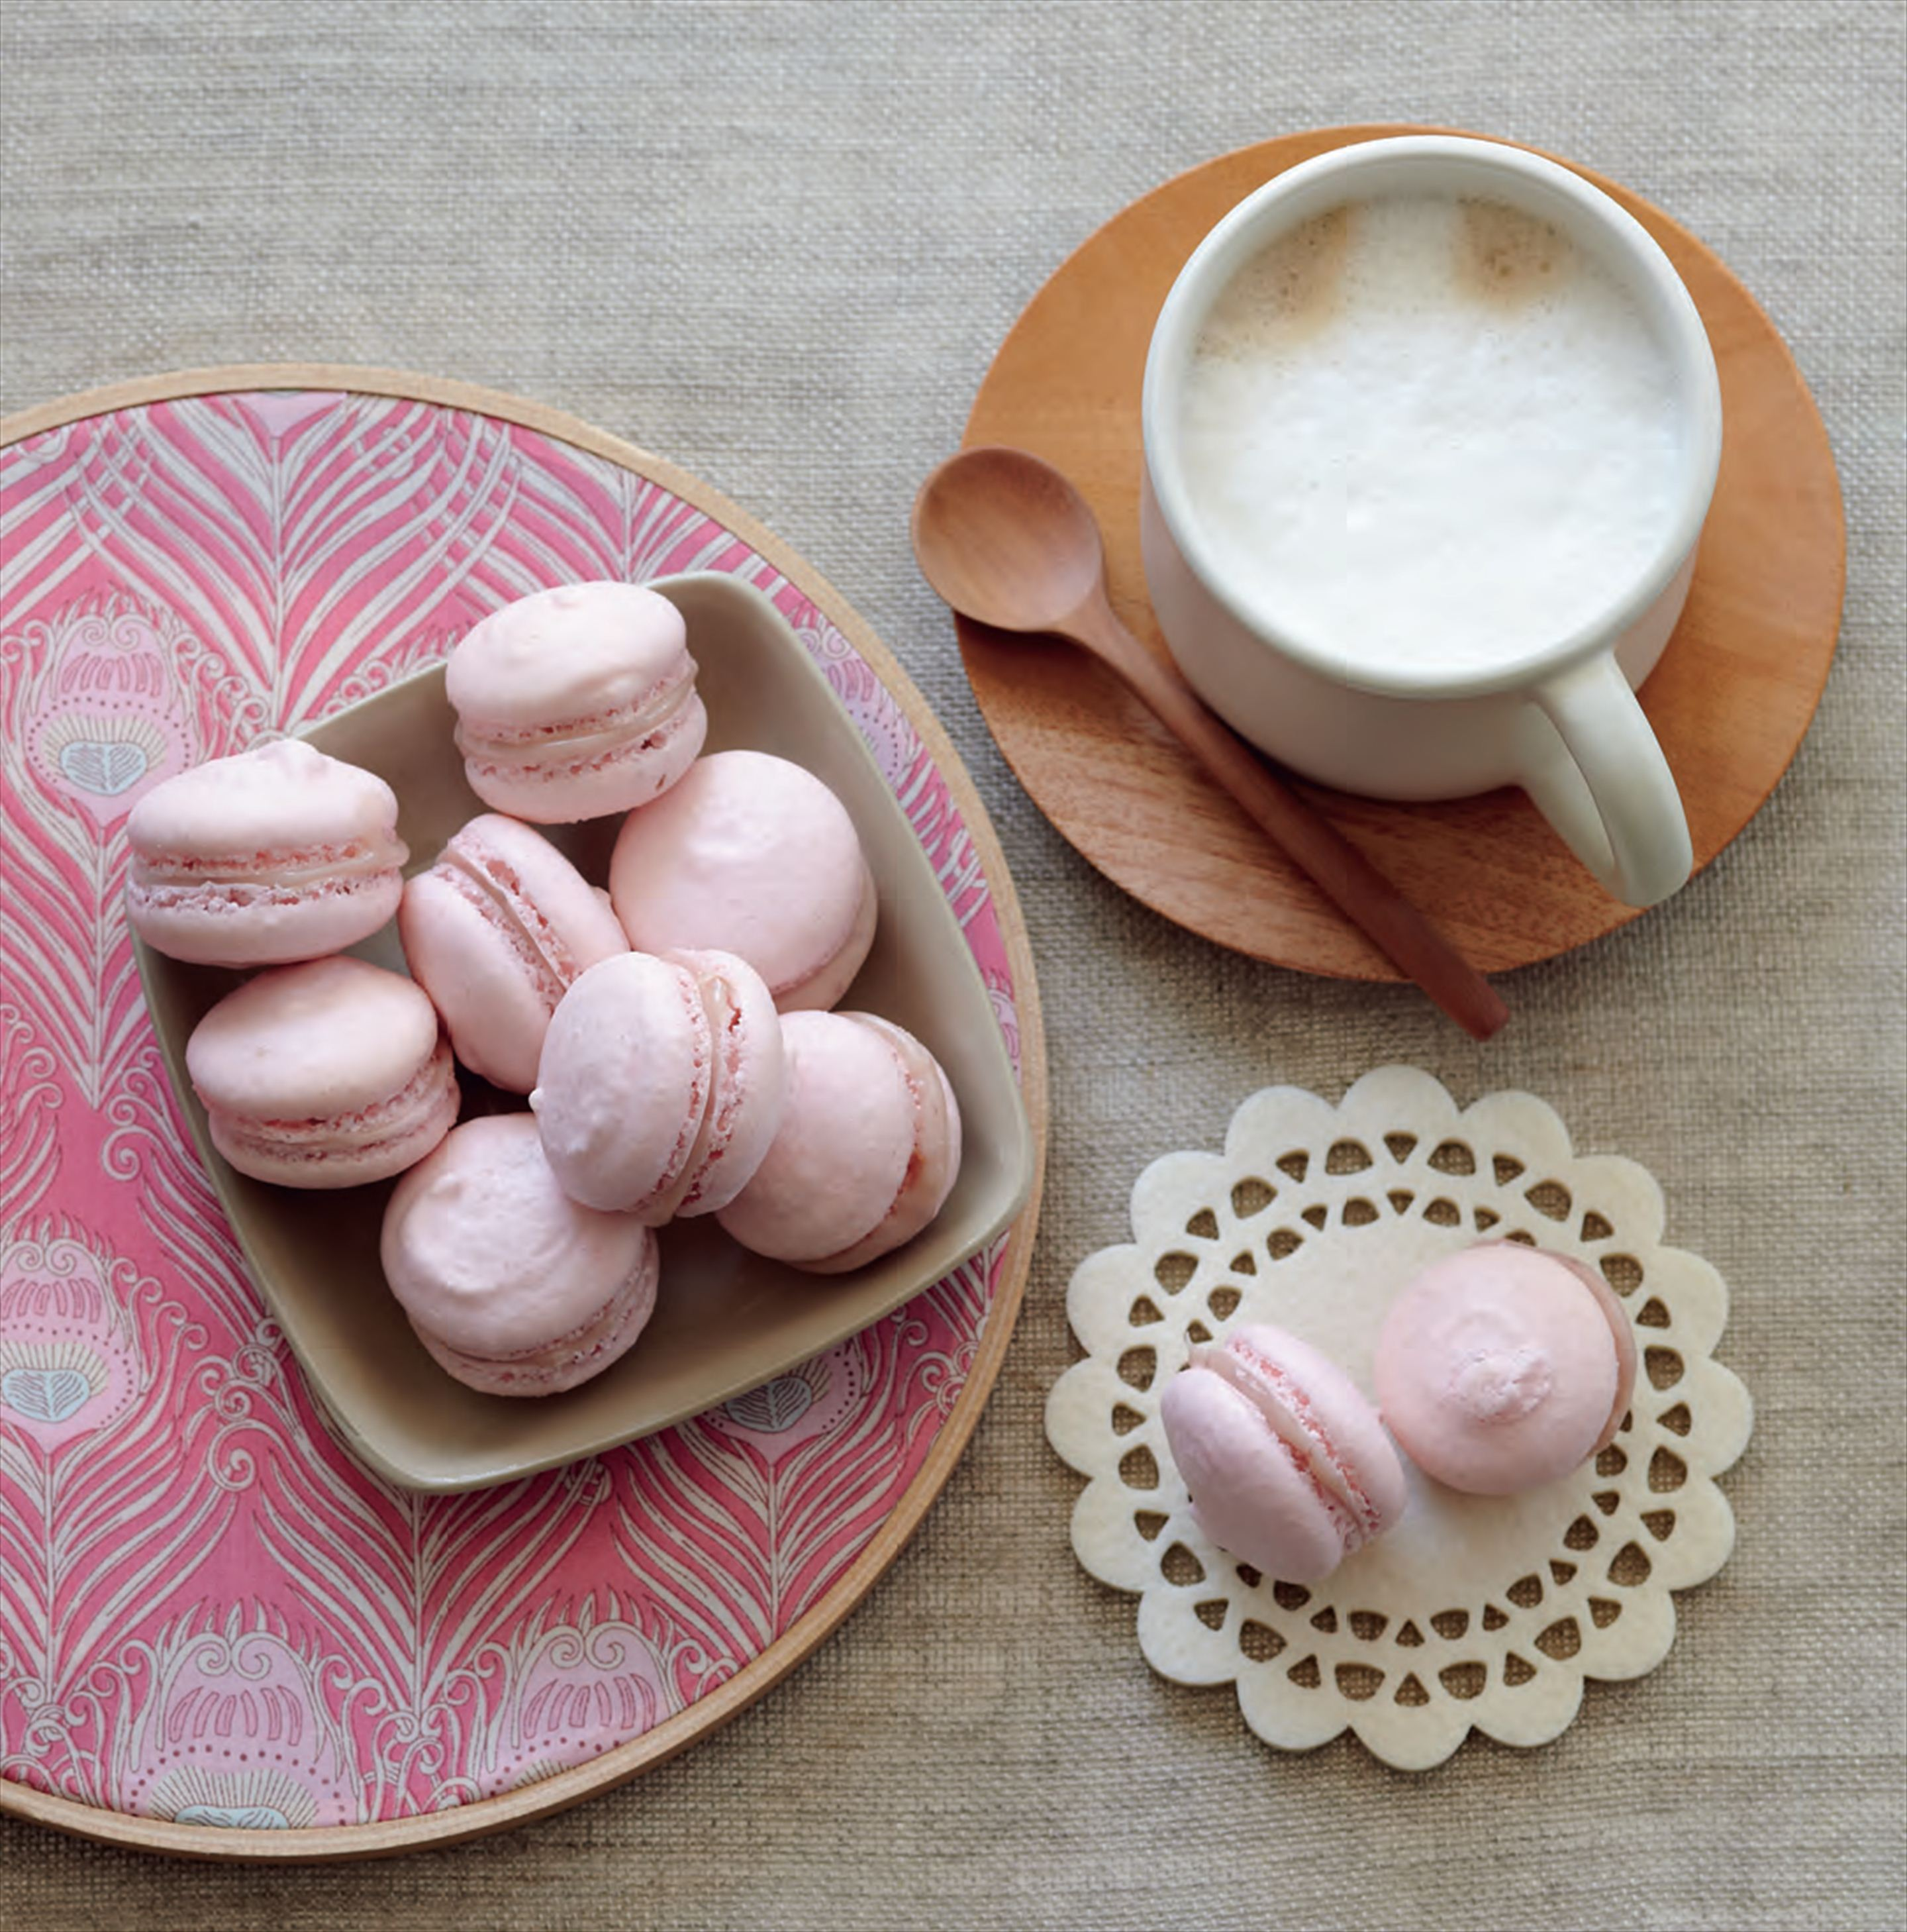 Raspberry macarons with white chocolate